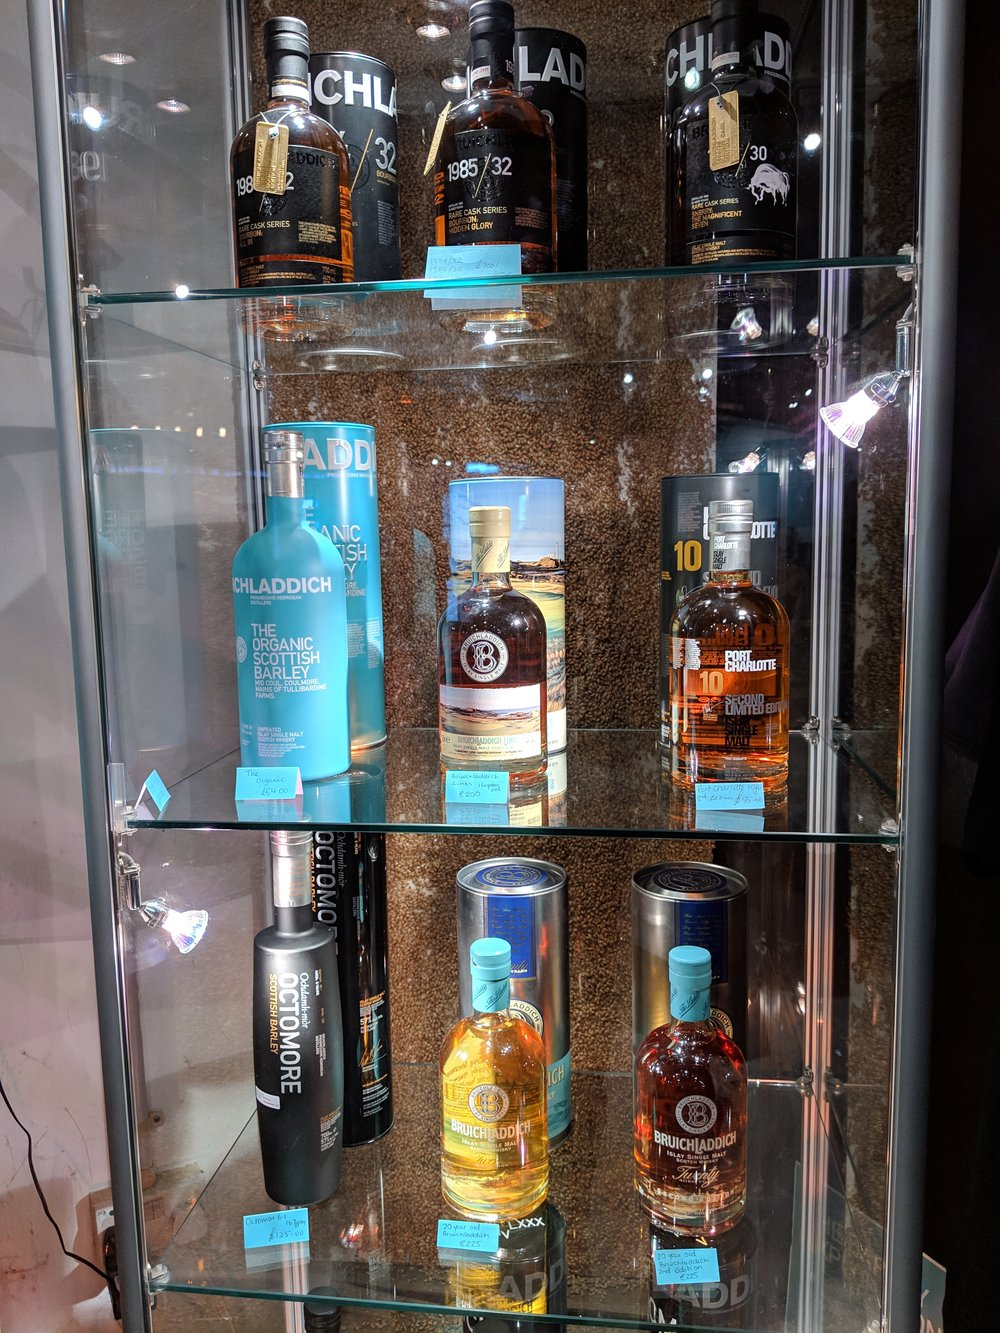 Some of the Bruichladdich wares for sale